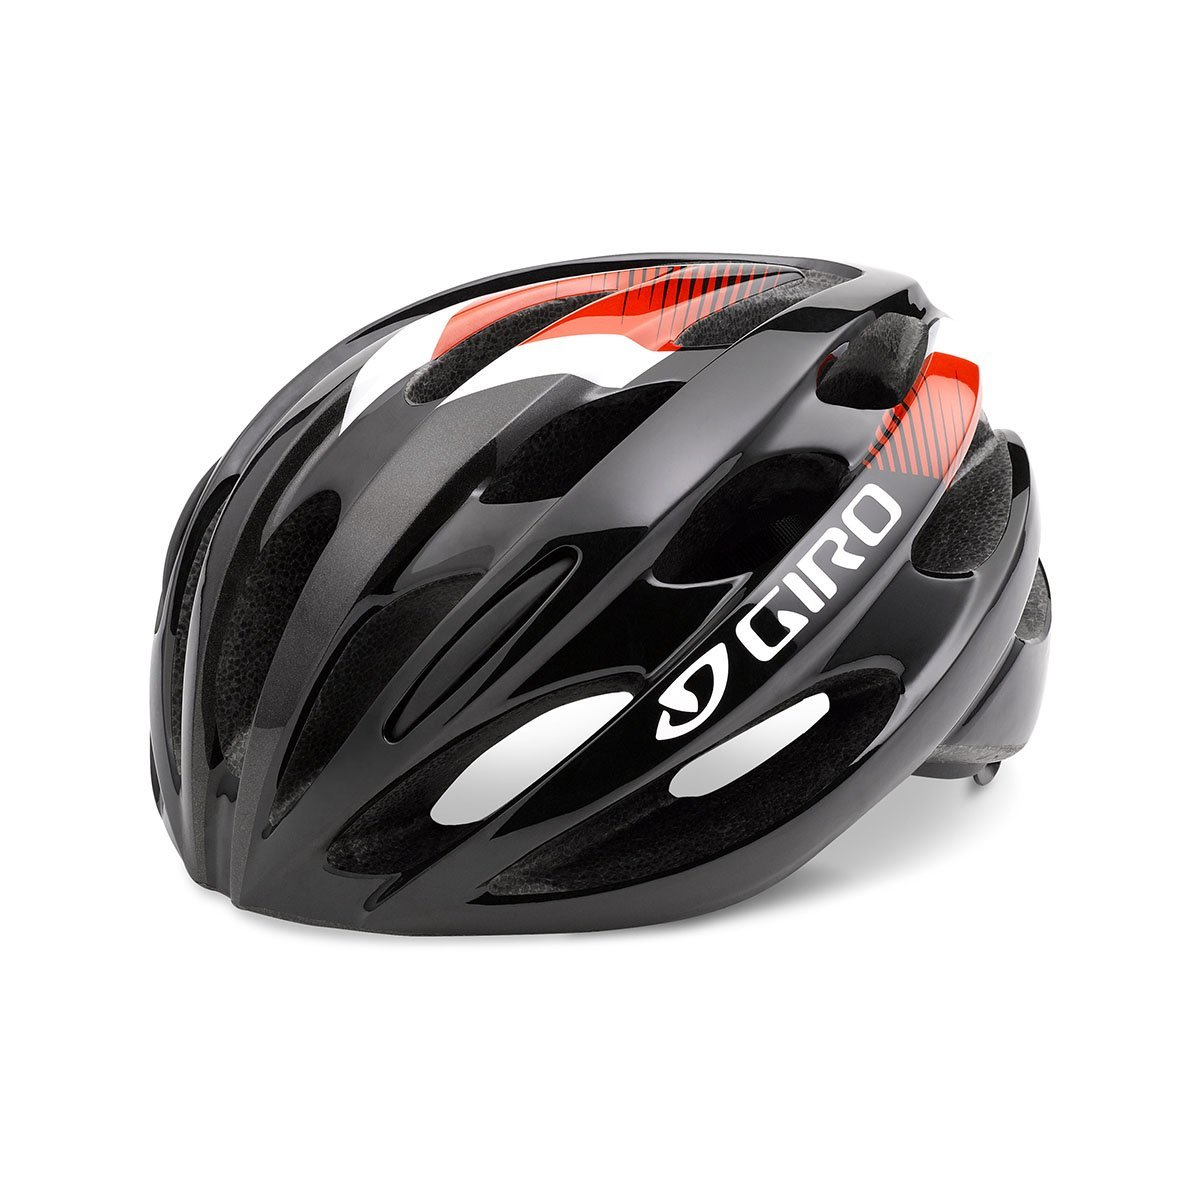 Amazon.com : Giro Trinity Helmet Bright Red/Black, One Size